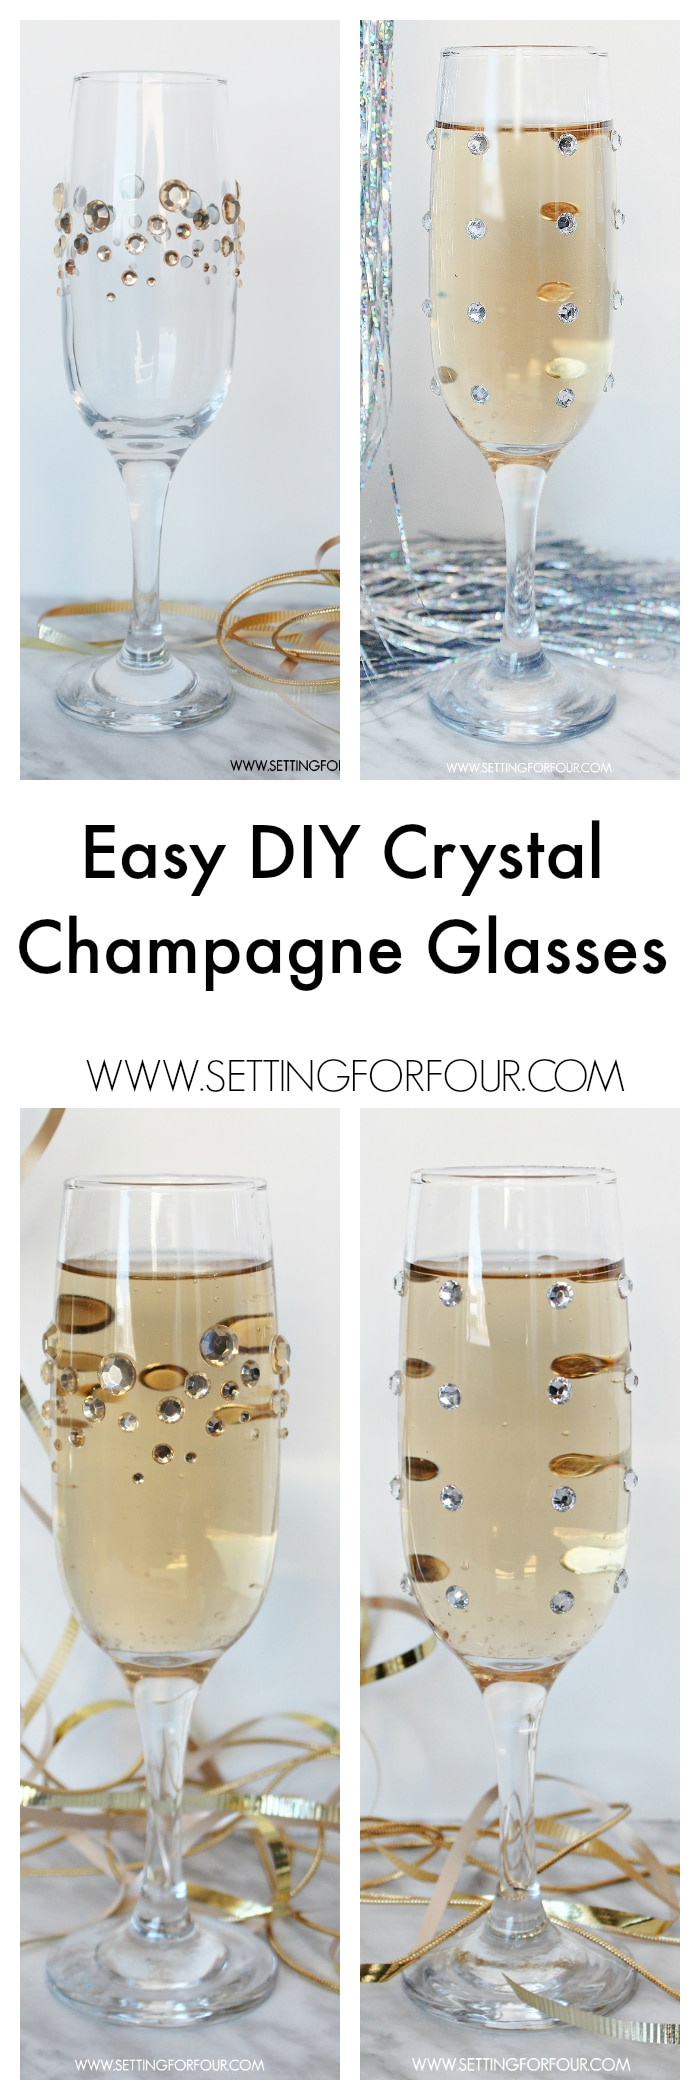 Fast, Fun and Fabulous! Make beautiful, quick and easy DIY Glamorous Crystal Rhinestone Champagne glasses for your next party! Dress up plain glasses with some pretty sparkle and shine. You won't believe how fun and easy this tutorial is!